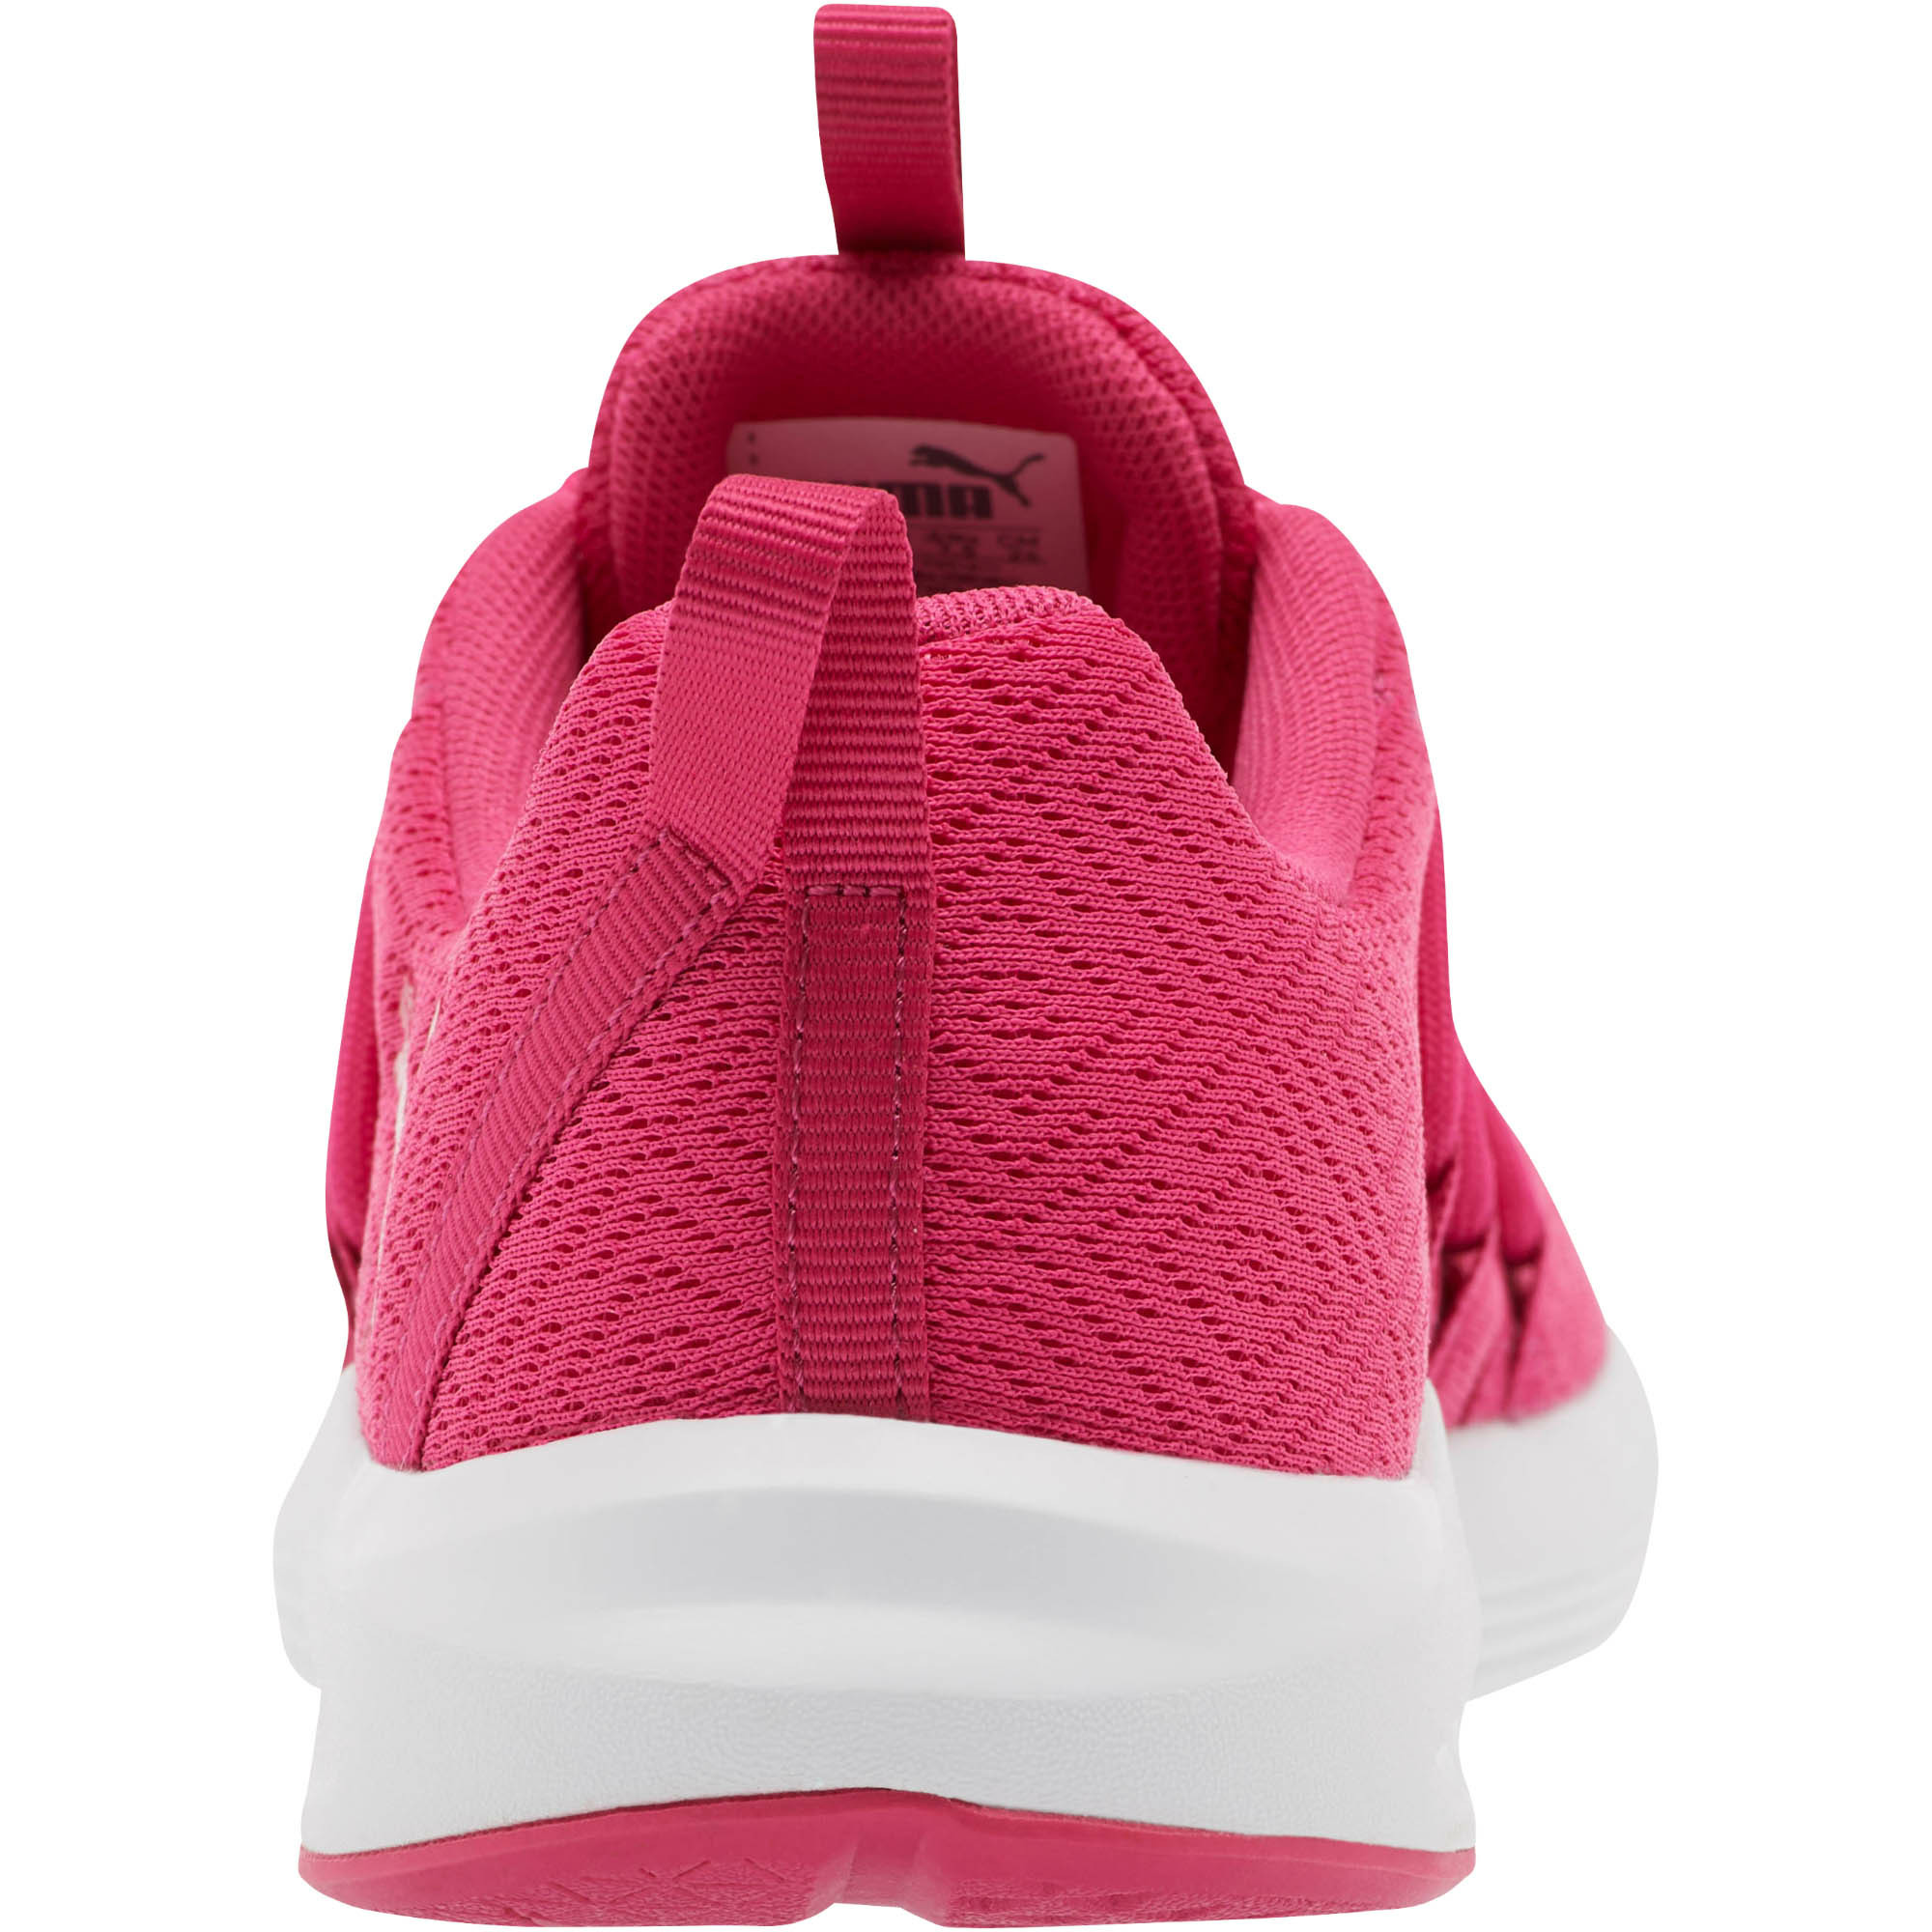 PUMA-Prowl-Alt-Stellar-Women-s-Training-Shoes-Women-Shoe-Training thumbnail 13